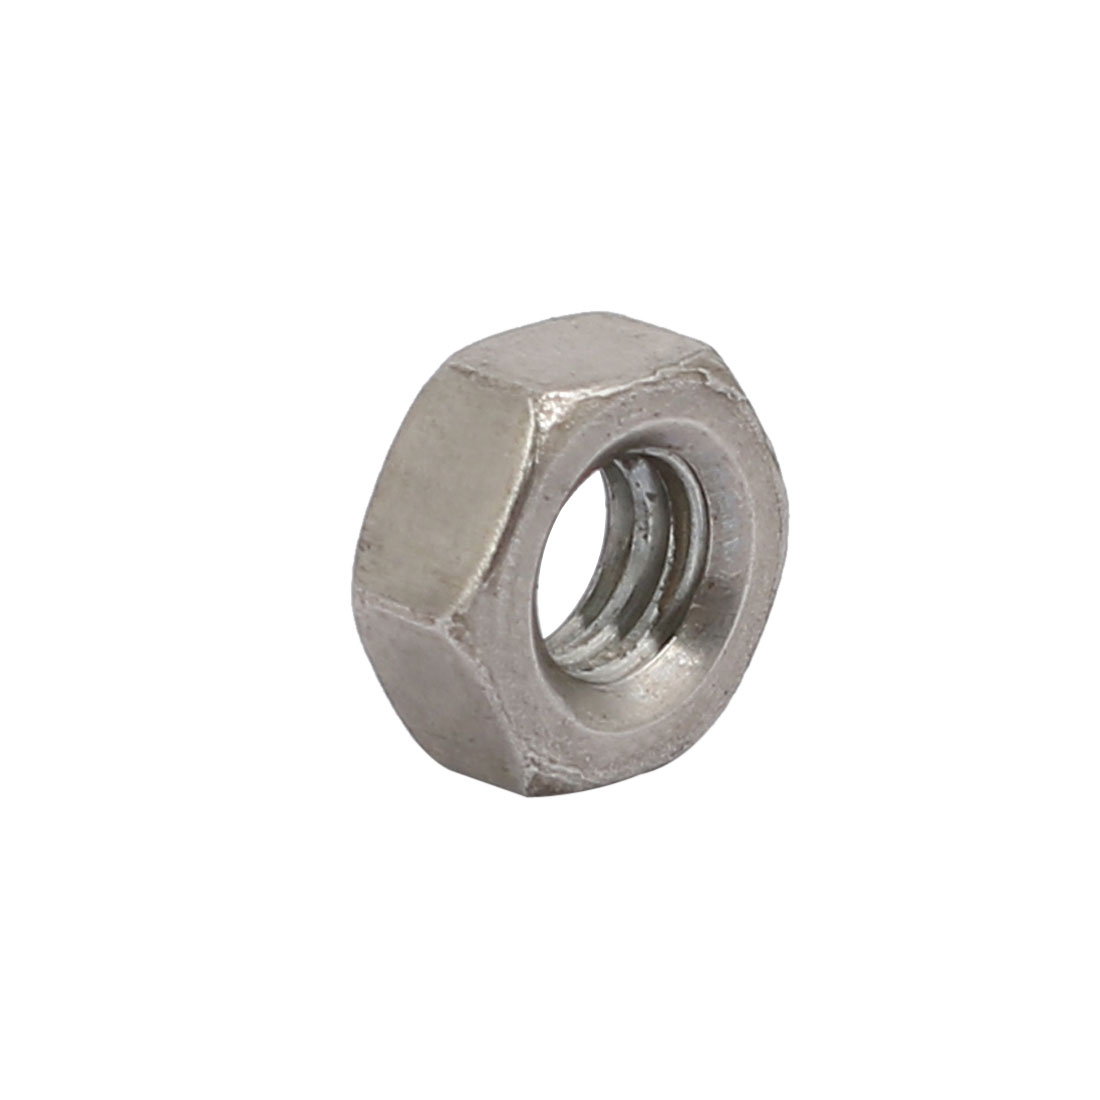 "Unique Bargains 20pcs 5/32""-32 BSW Thread 304 Stainless Steel Hex Nut Fastener Silver Tone - image 1 de 3"